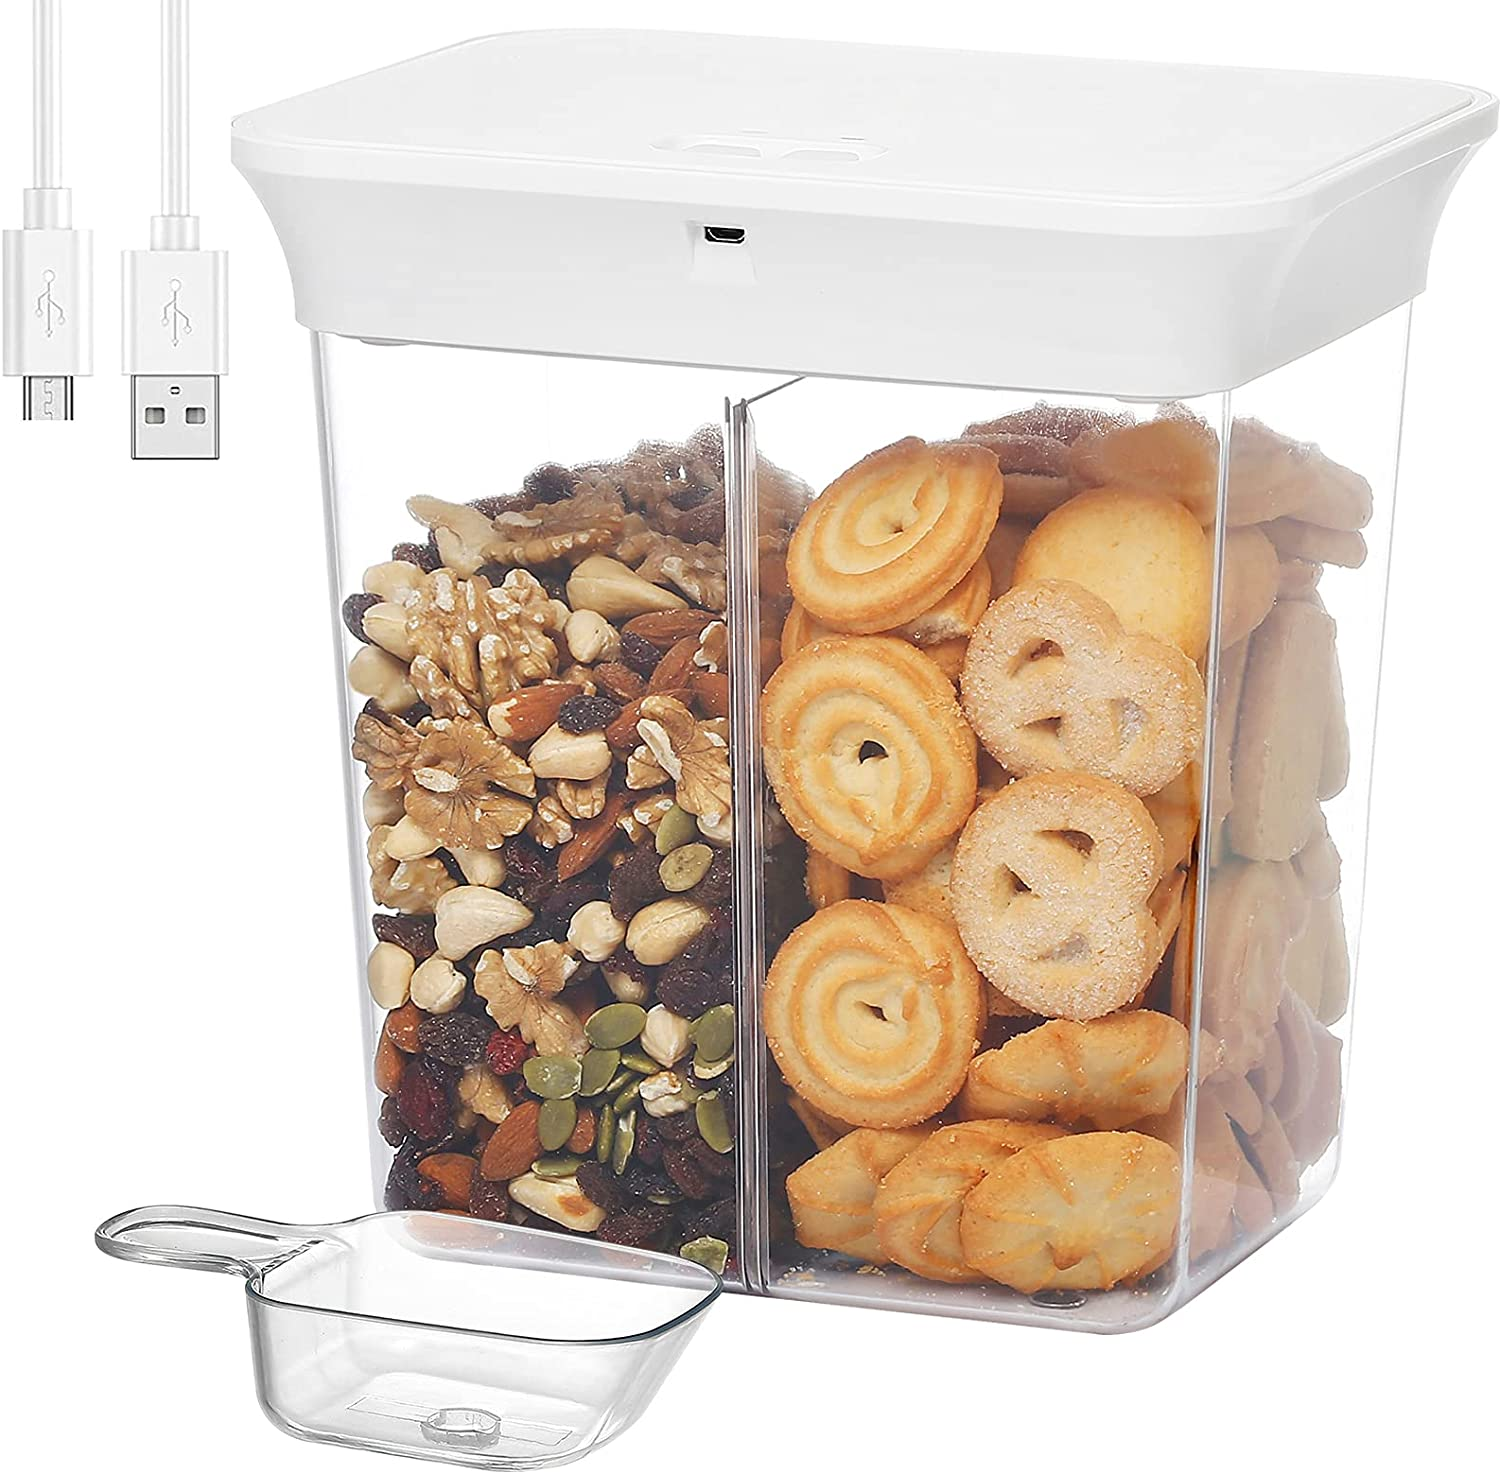 YOUDU Vacuum Food Storage Containers: Airtight Lids Smart Vacuum Auto Storage Container for Flour Sugar Cereal Meat Vegetable Rice Fruit Coffee Pet Food Kitchen & Pantry Organization